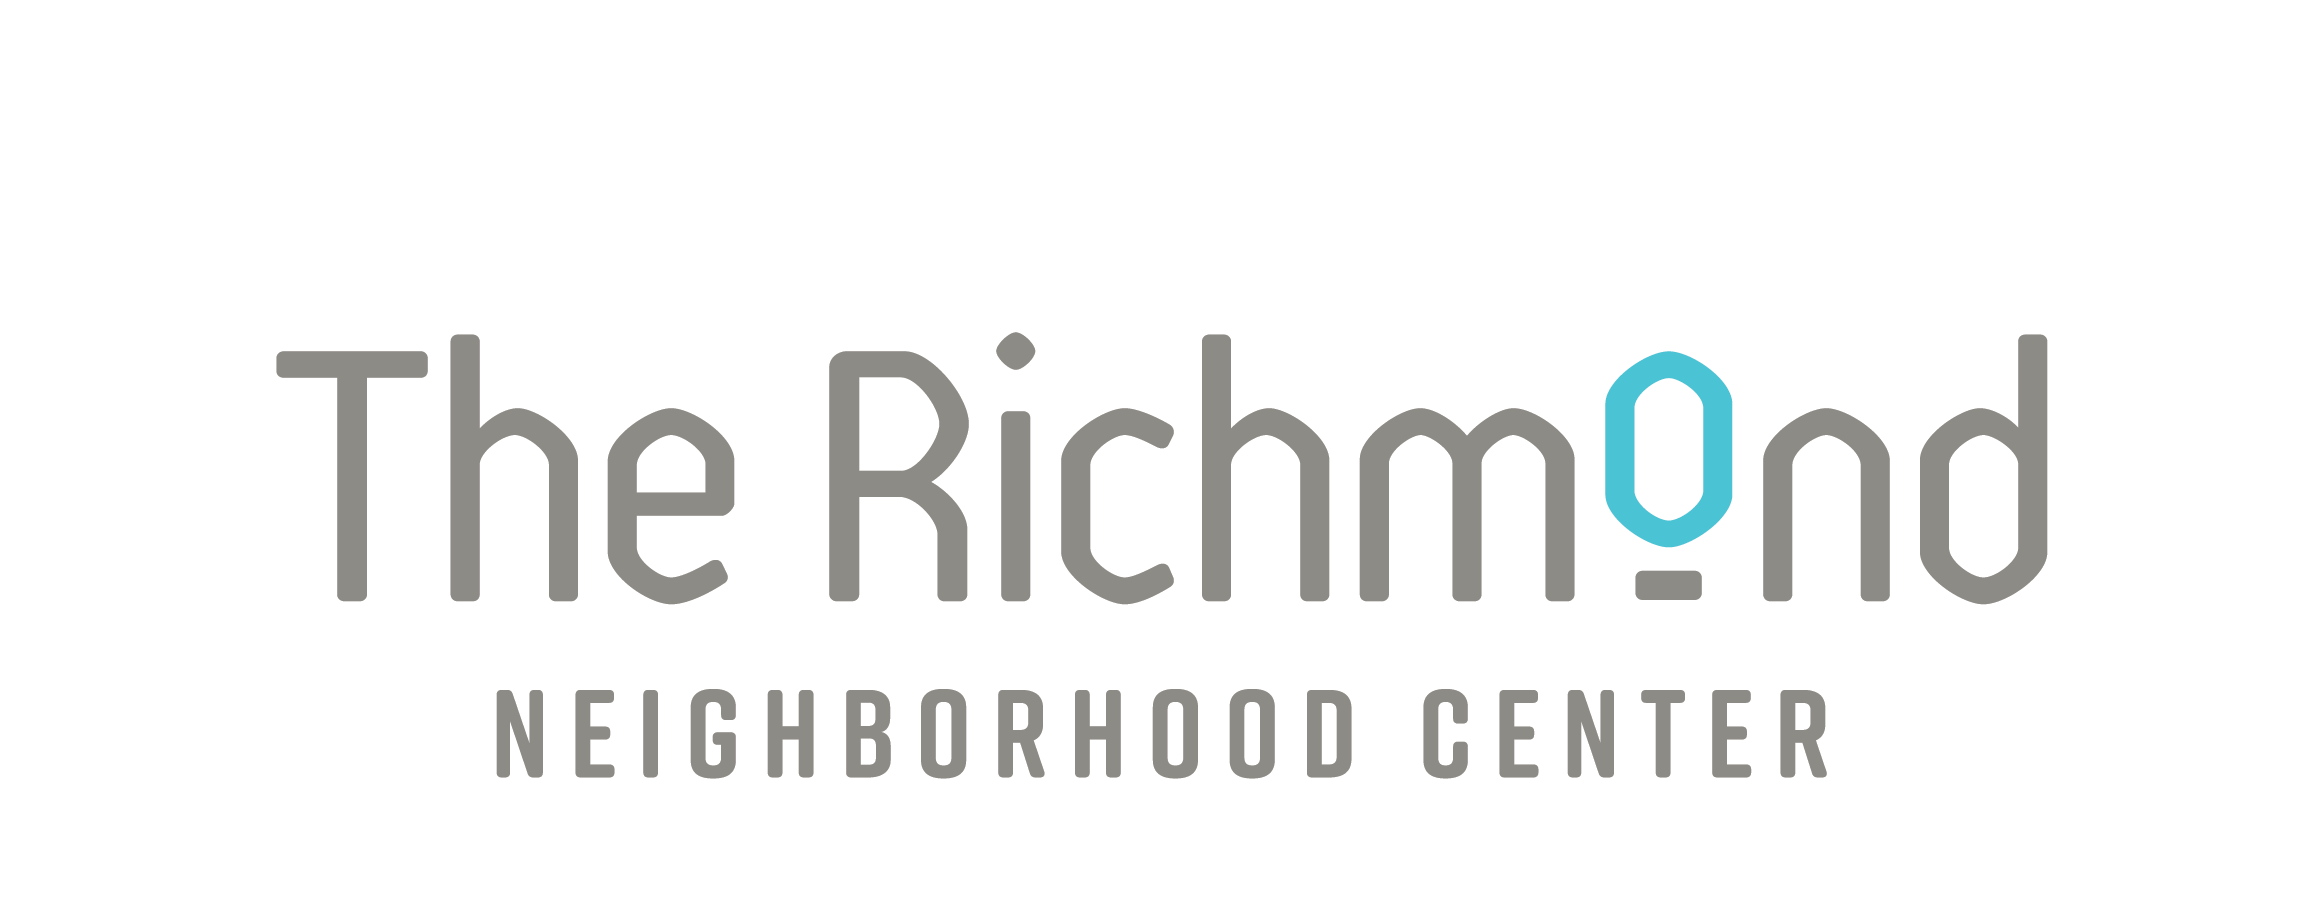 The Richmond Neighborhood Center